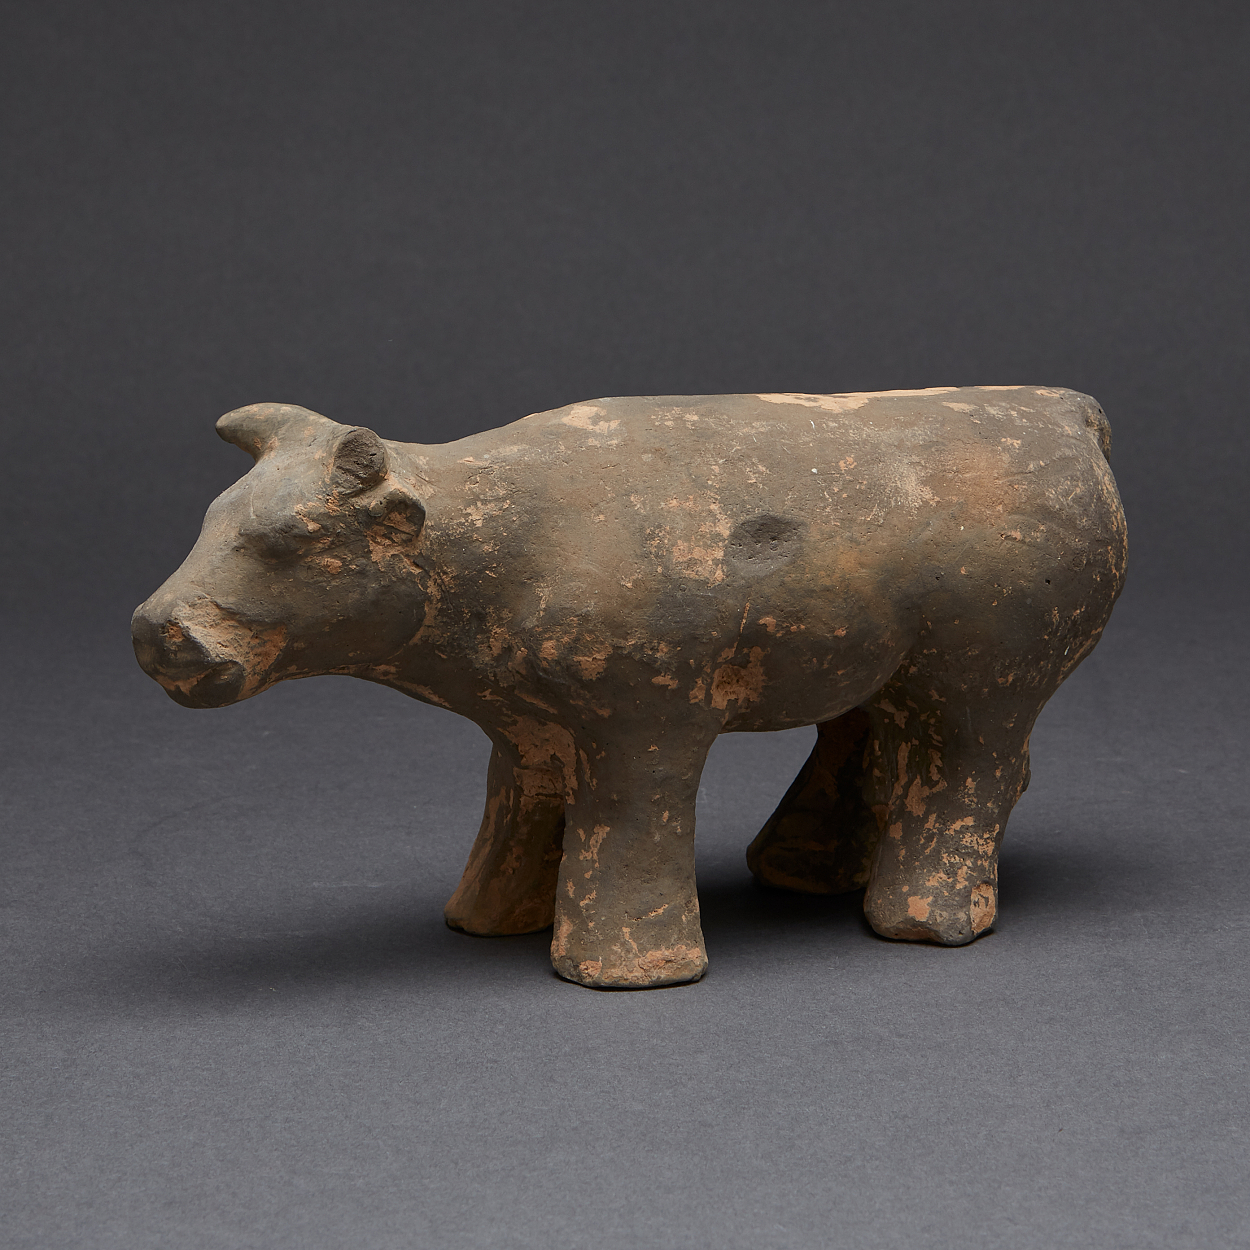 A Painted Pottery Model of an Ox